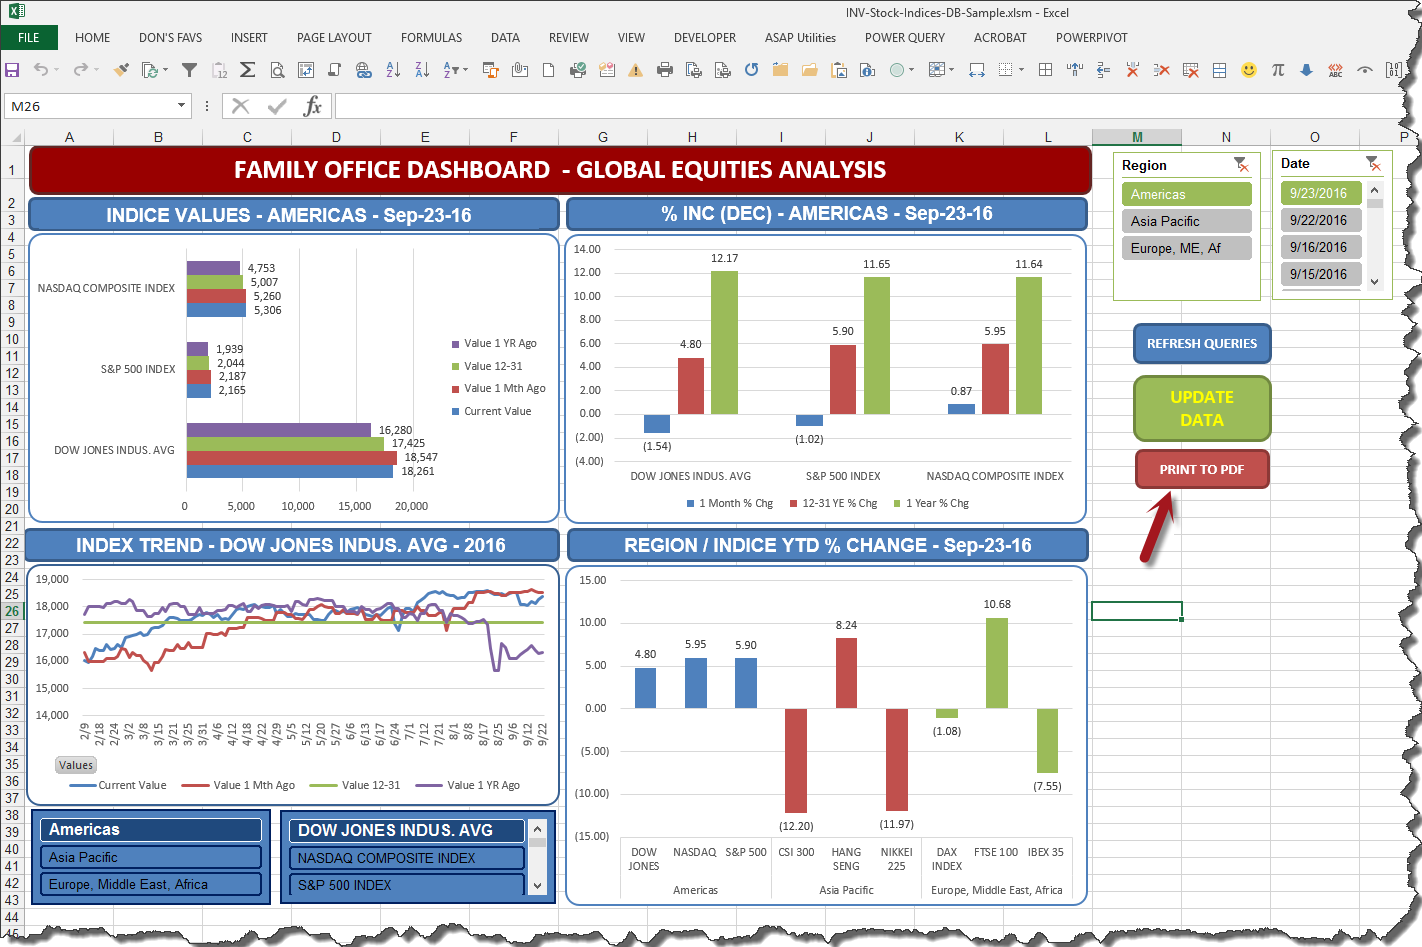 STOP IT! 3 Things I STOPPED Doing in Microsoft Excel to Boost Productivity